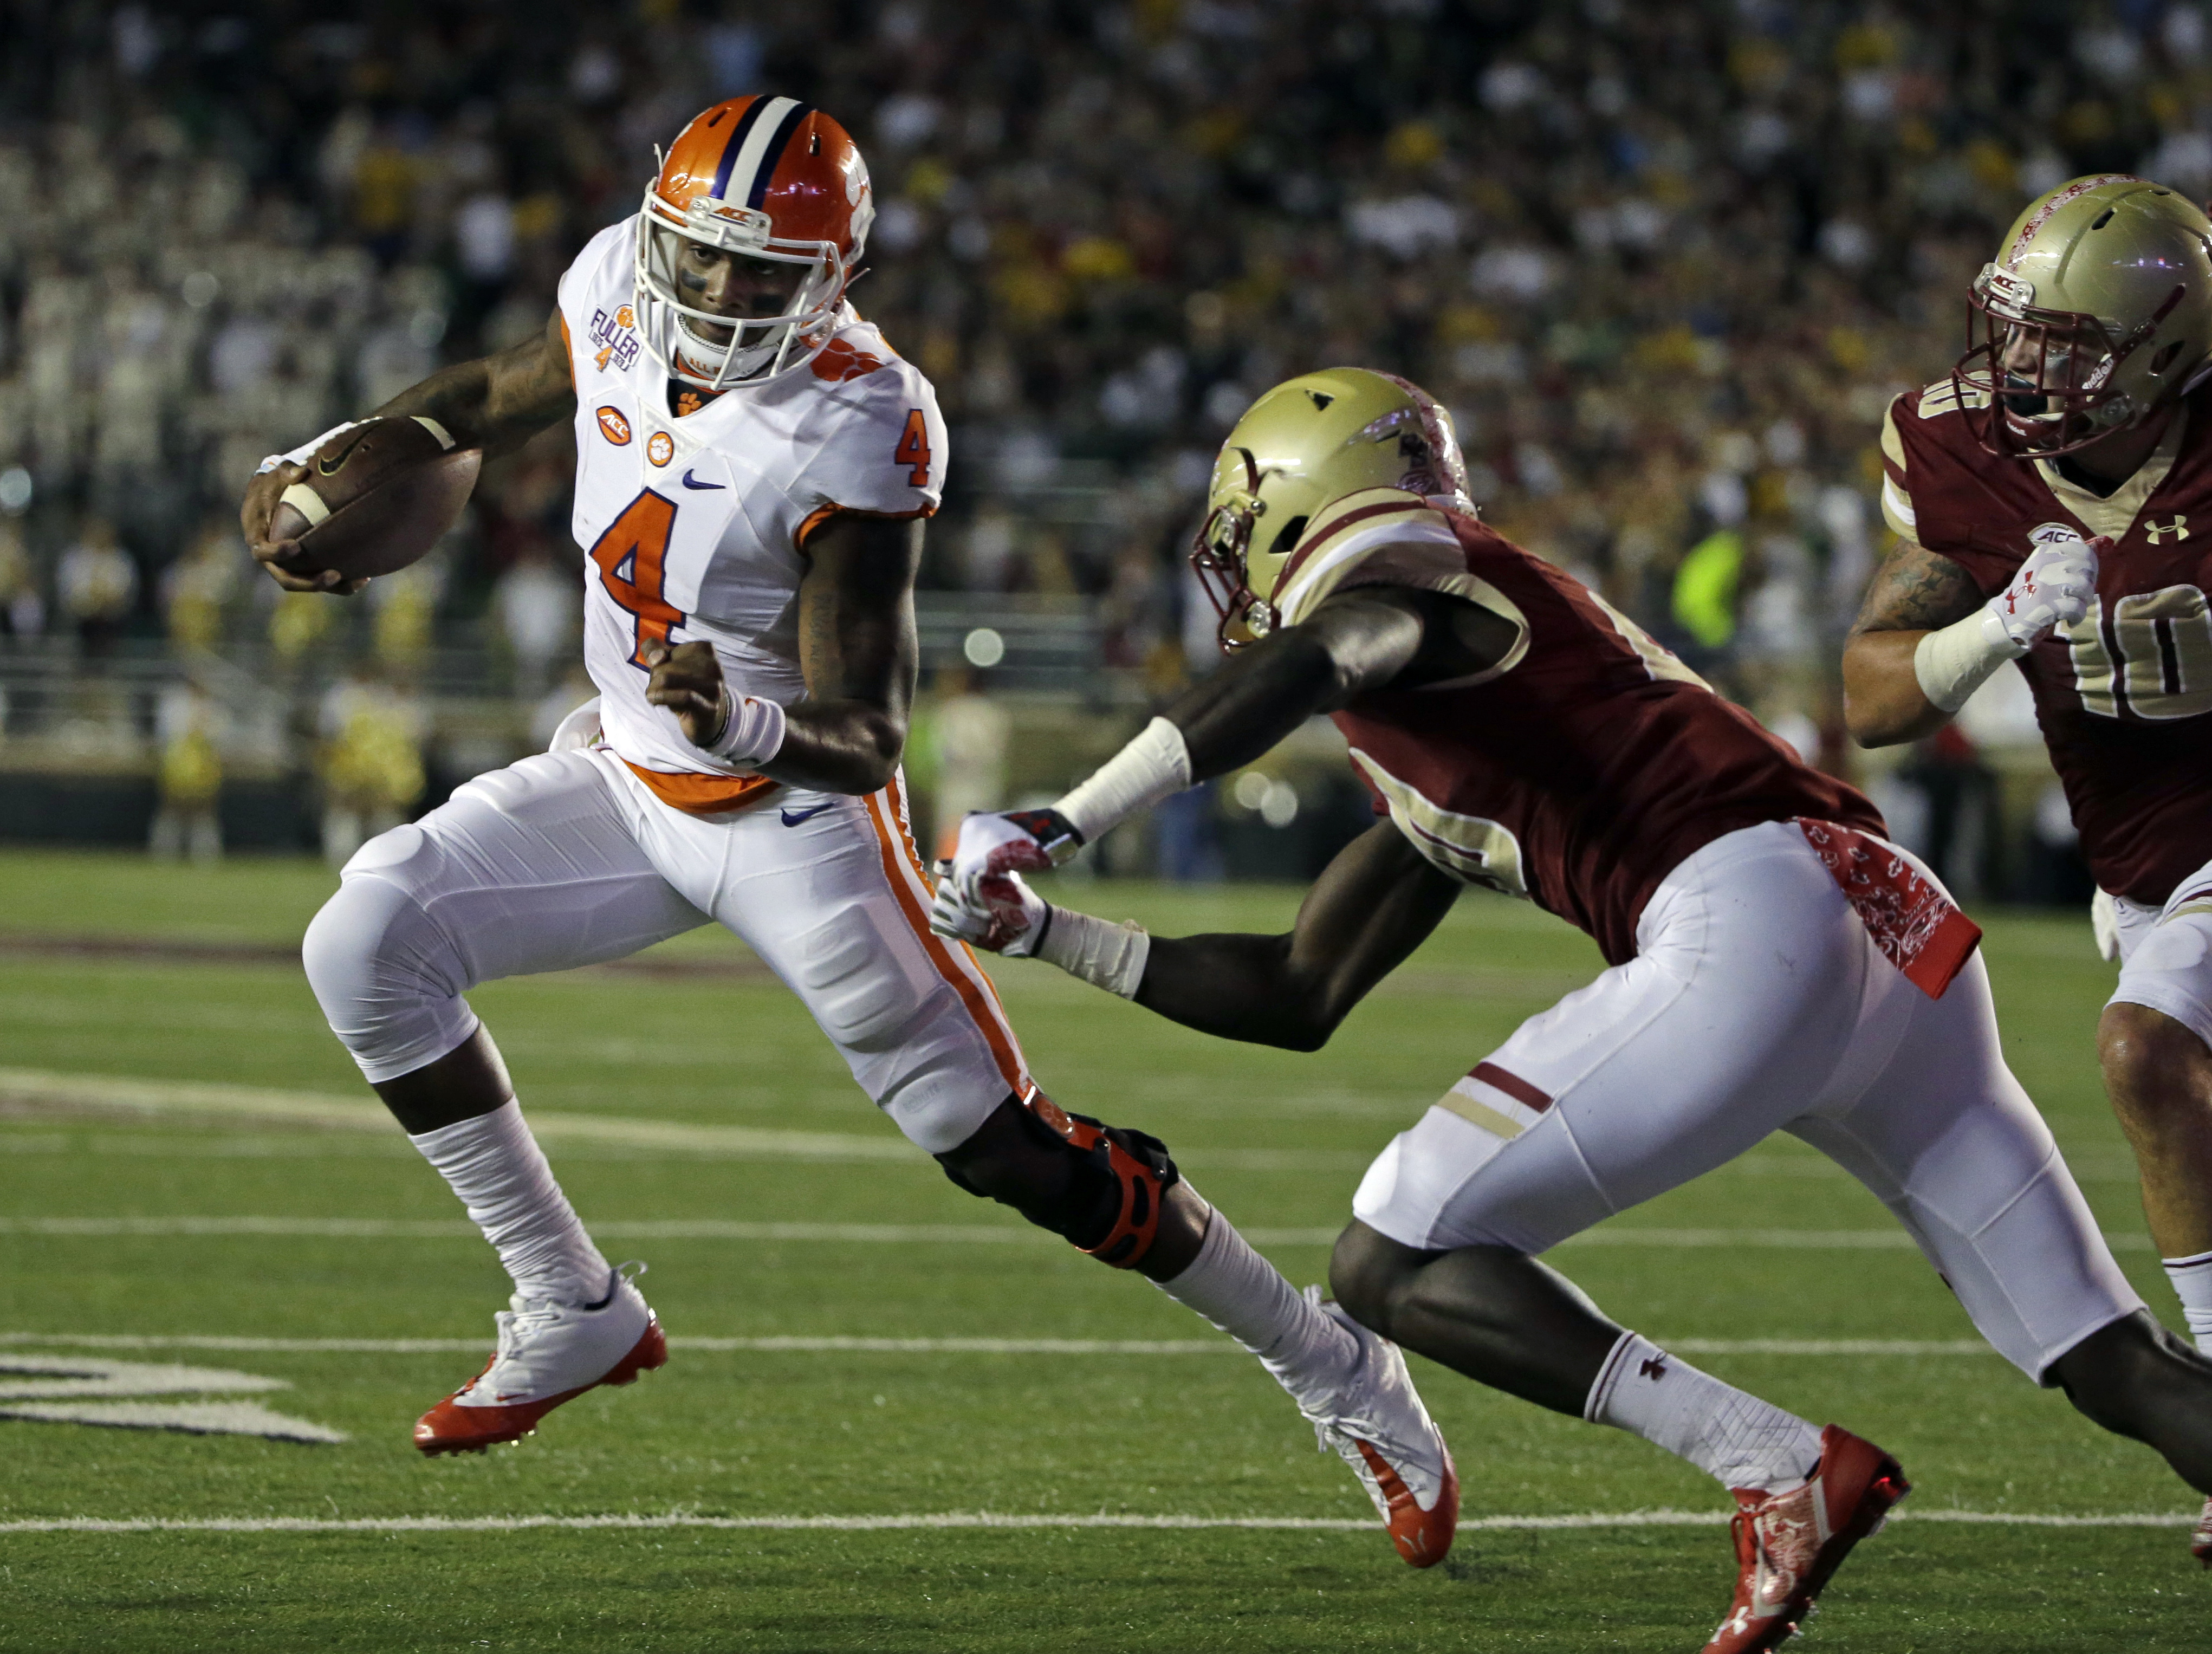 FILE - In this Oct. 7, 2016, file photo, Clemson quarterback Deshaun Watson (4) dashes around Boston College defensive back Isaac Yiadom (20) and linebacker Ty Schwab (10) during the first half of an NCAA college football game, in Boston. Watson is still